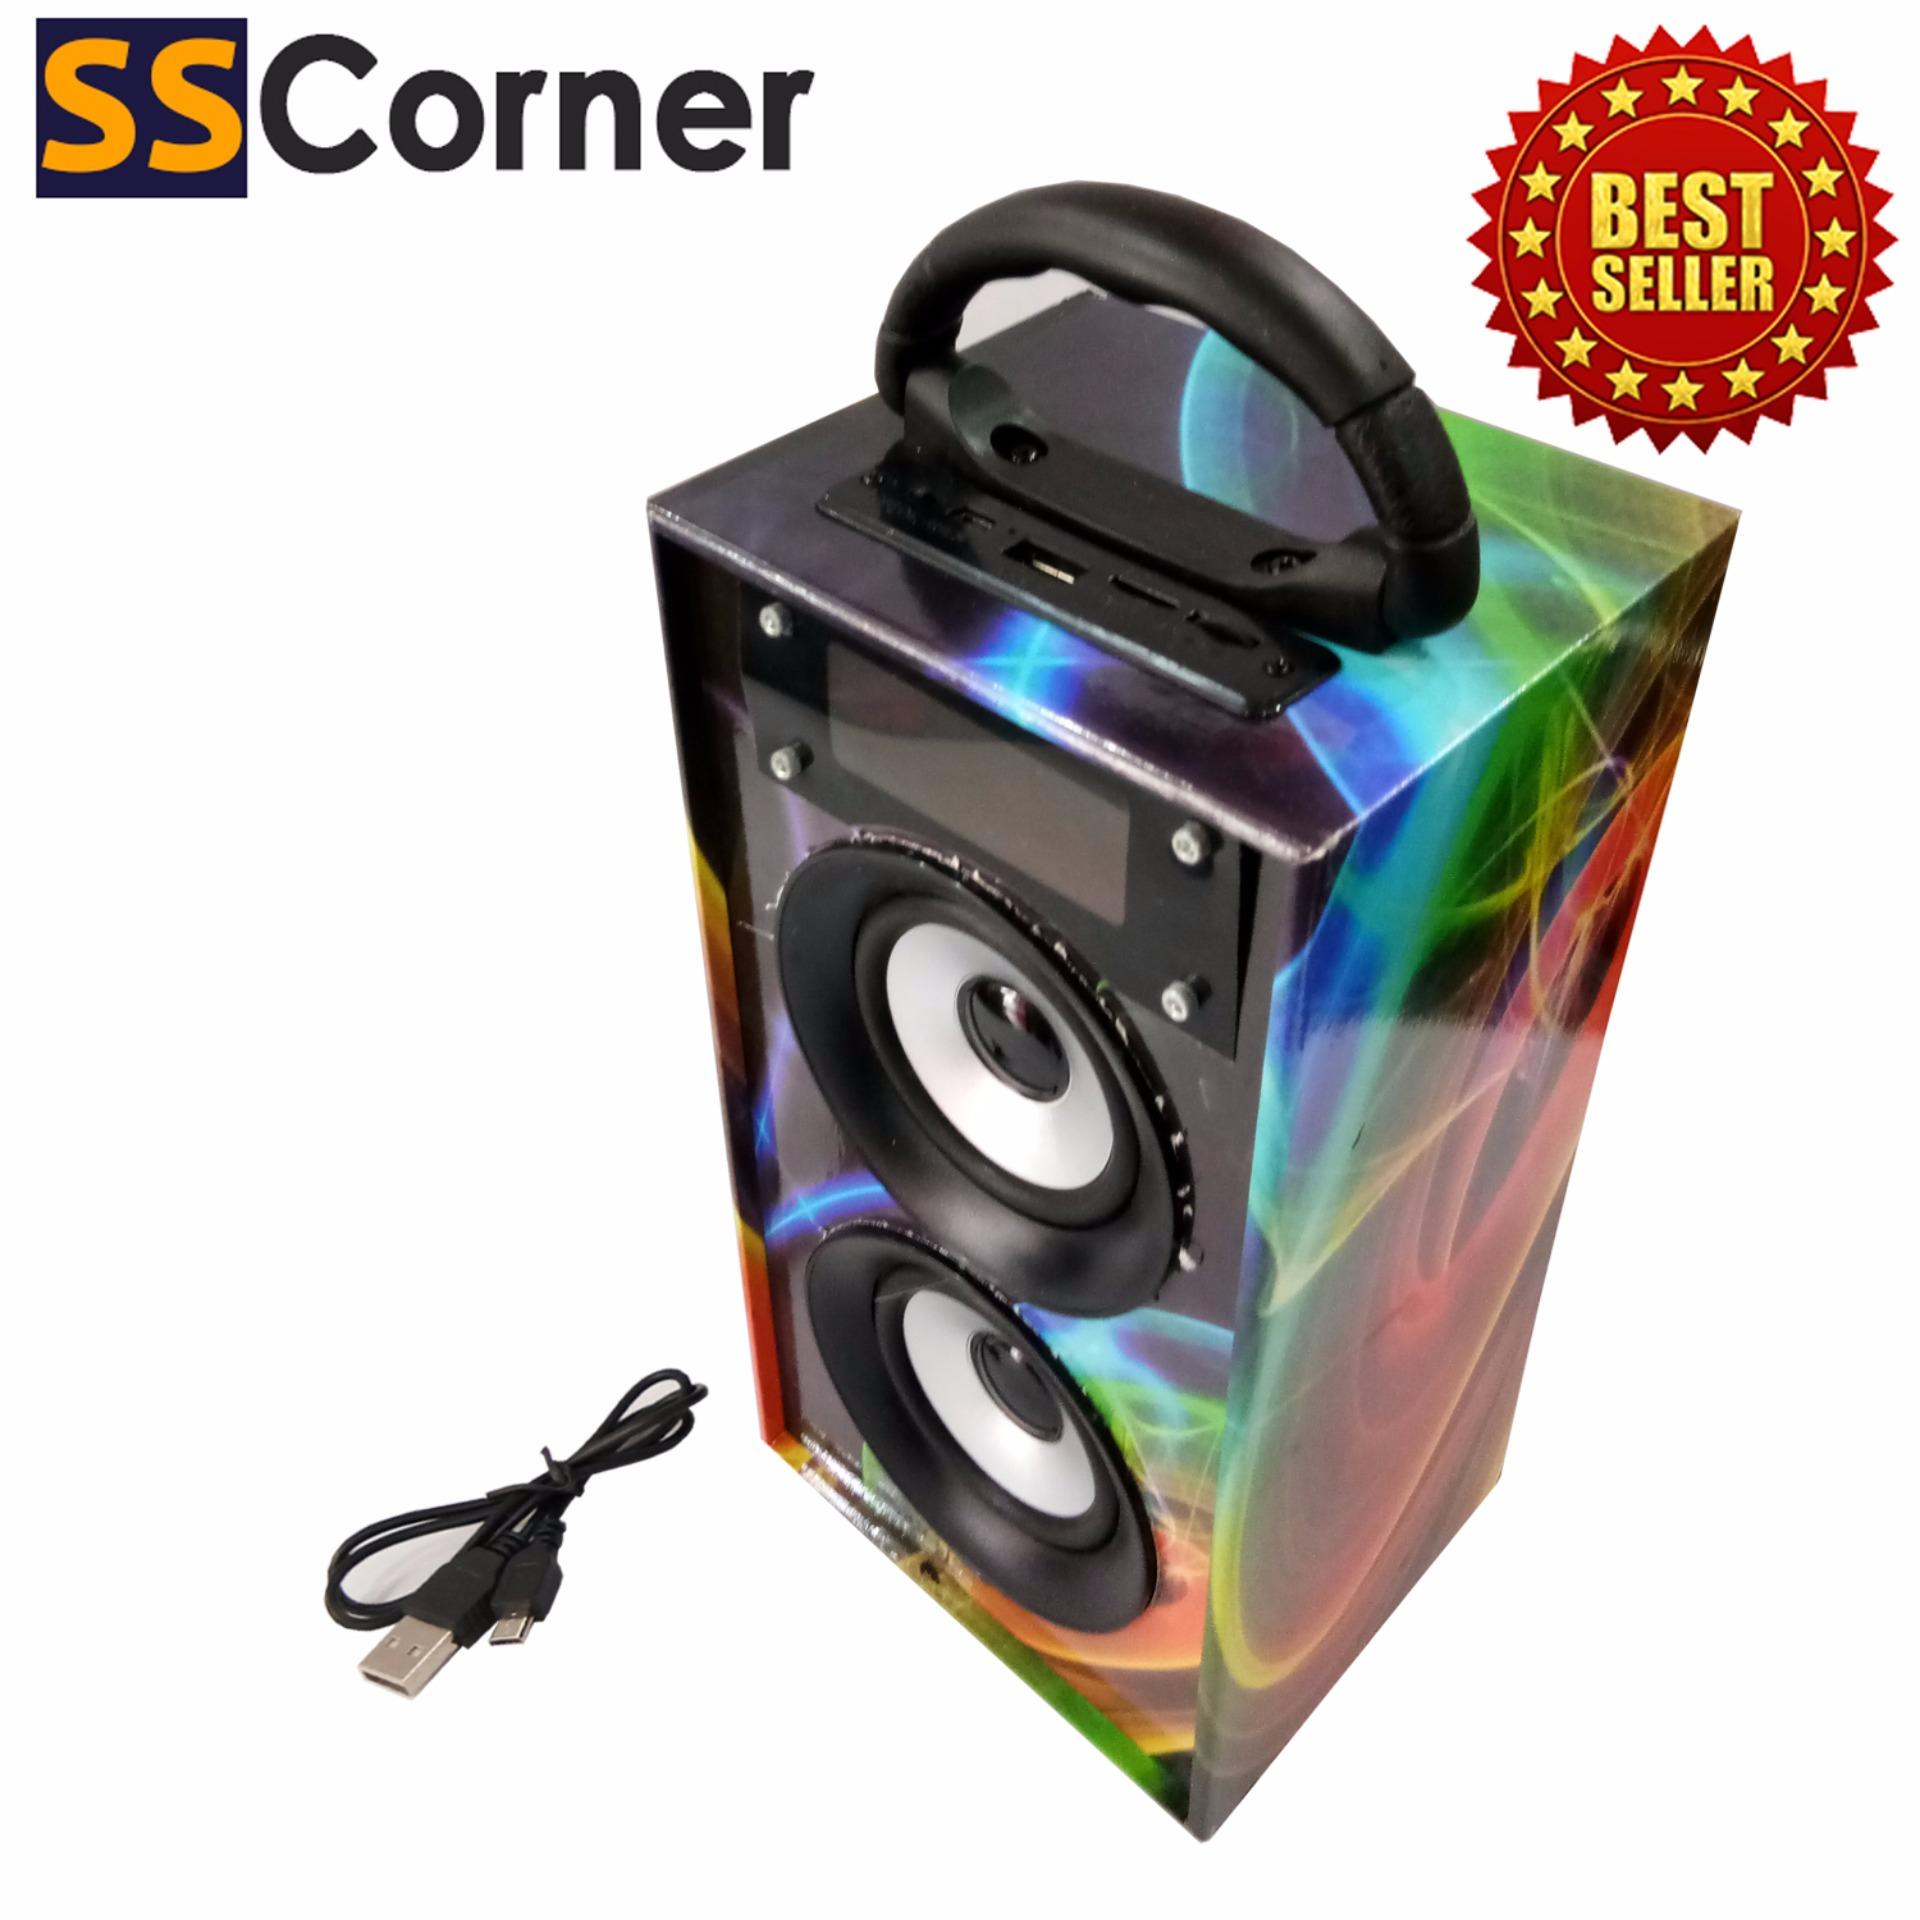 SS Corner Multimedia Speaker Oplus Portable box BGH70 Dj Super Bass. Click image for Gallery